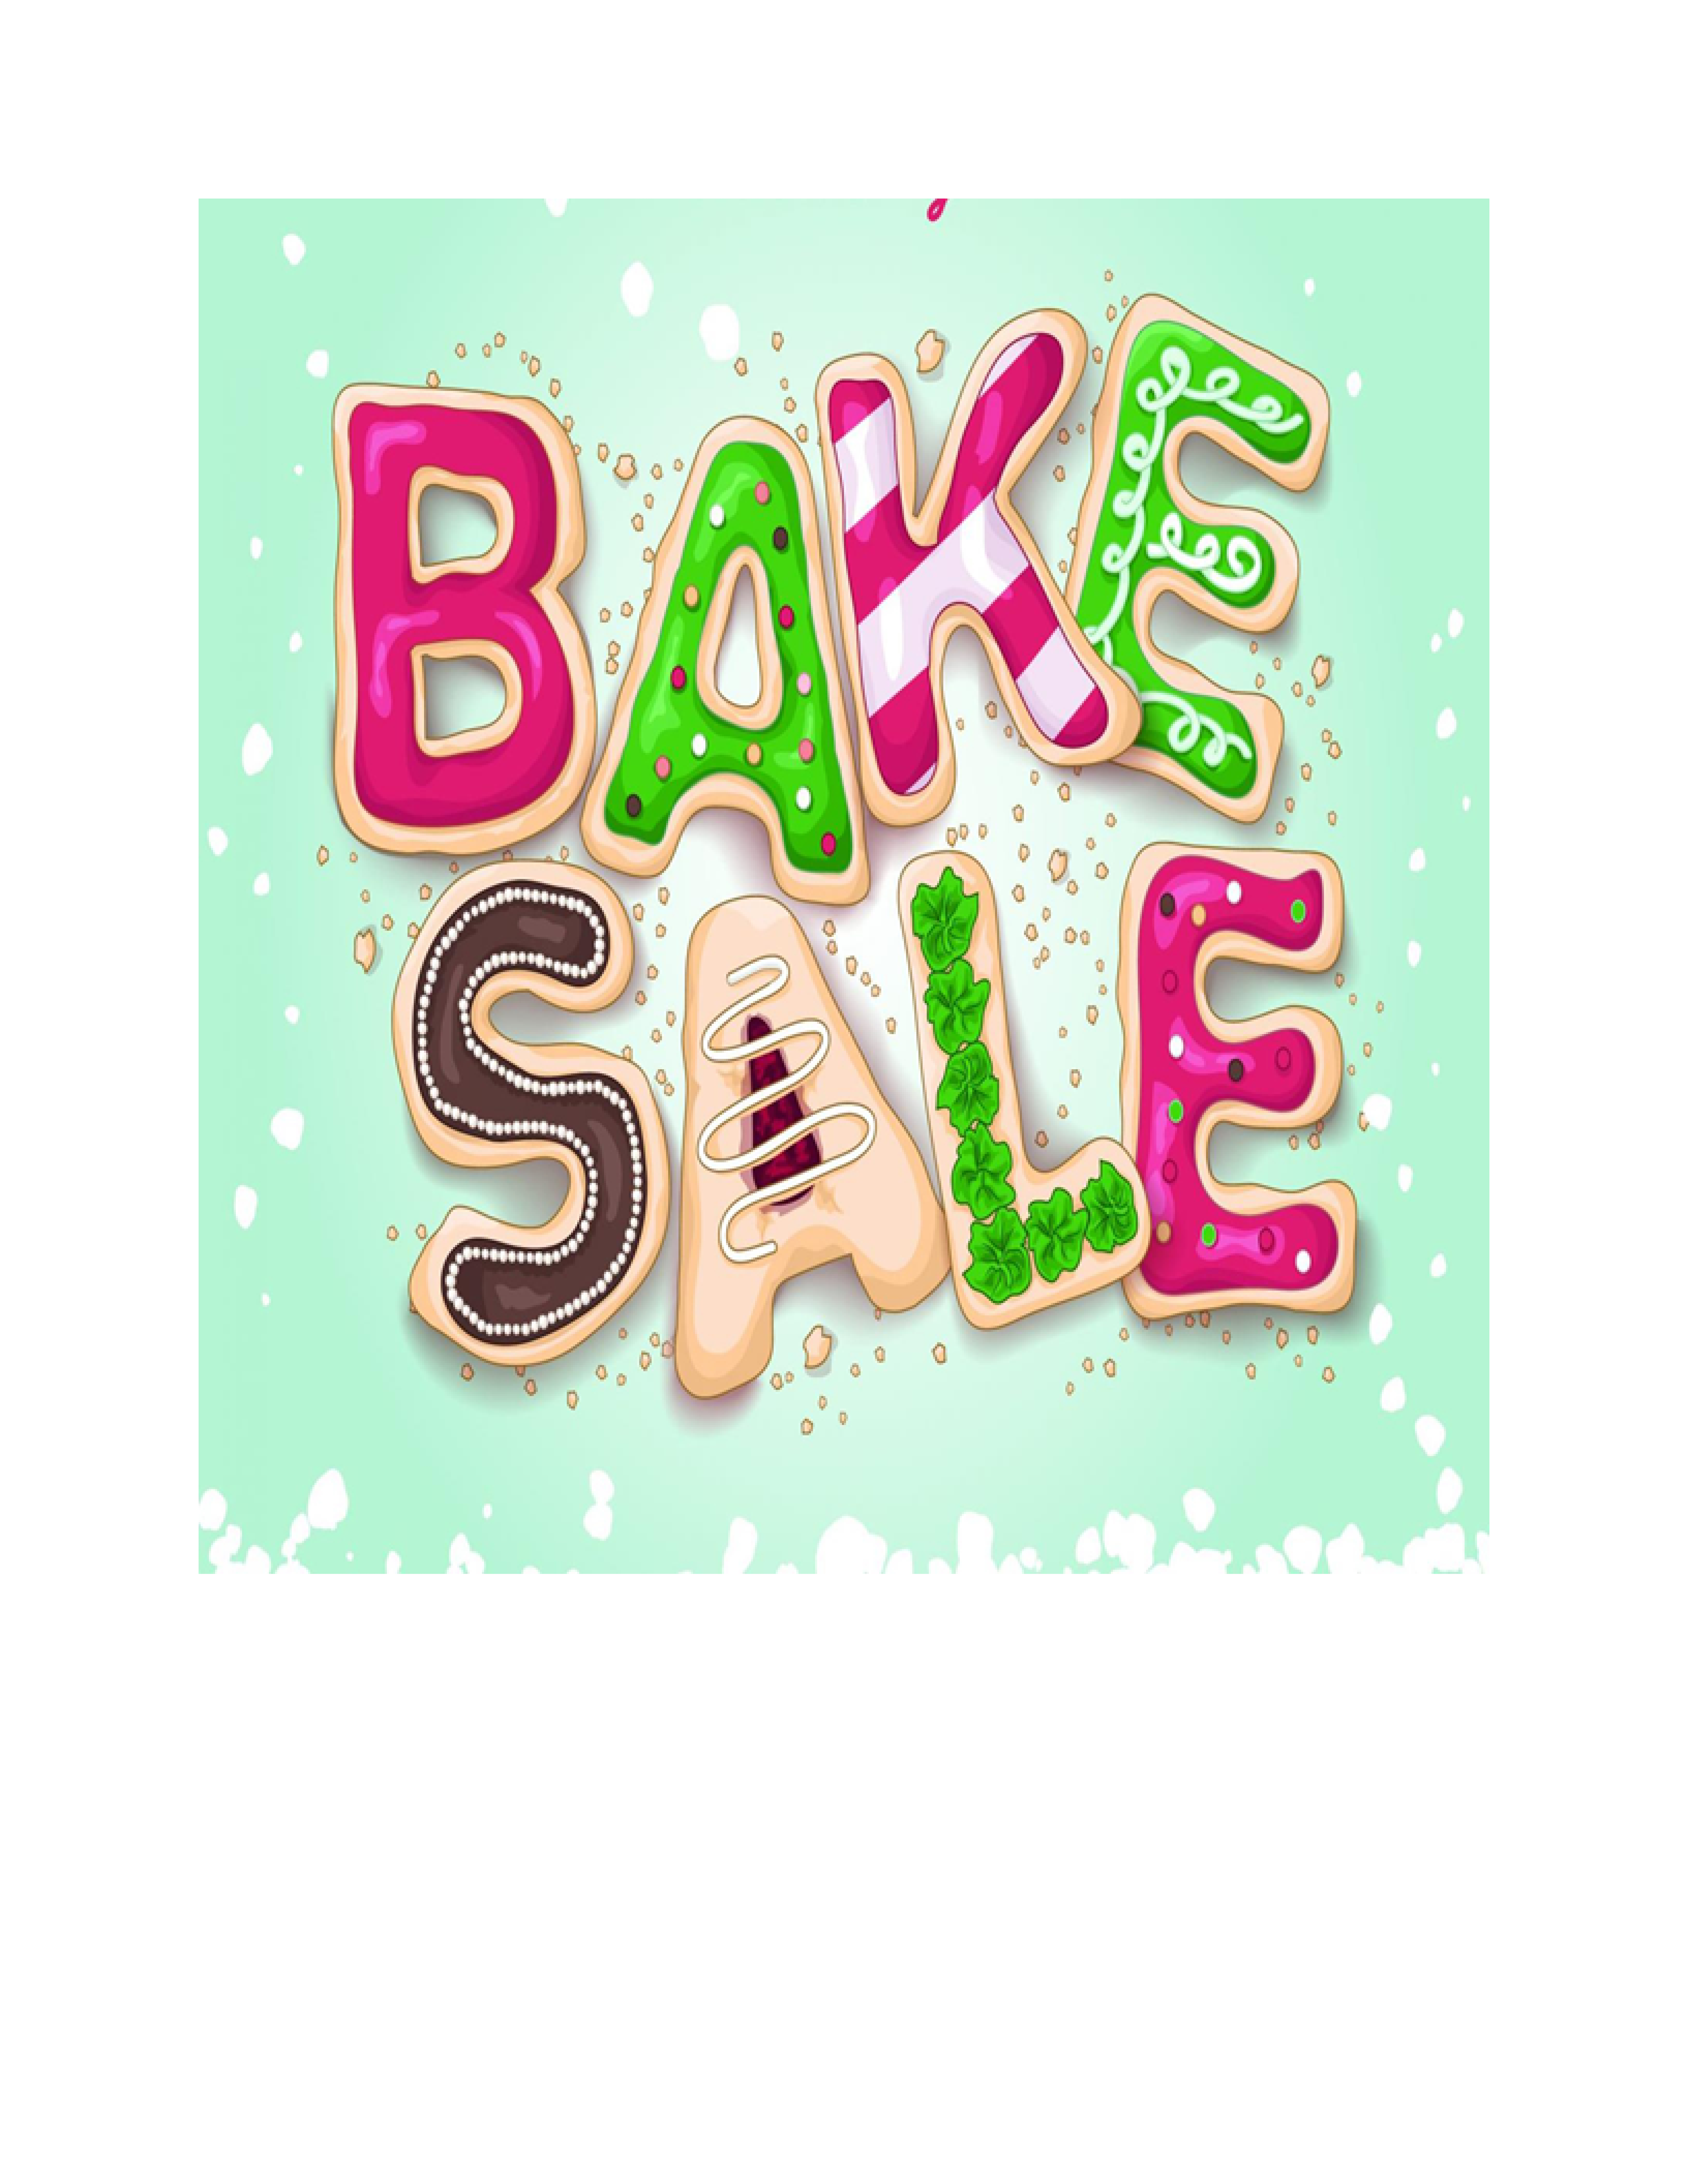 ST STEPHENS SECOND ANNUAL BAKE SALE